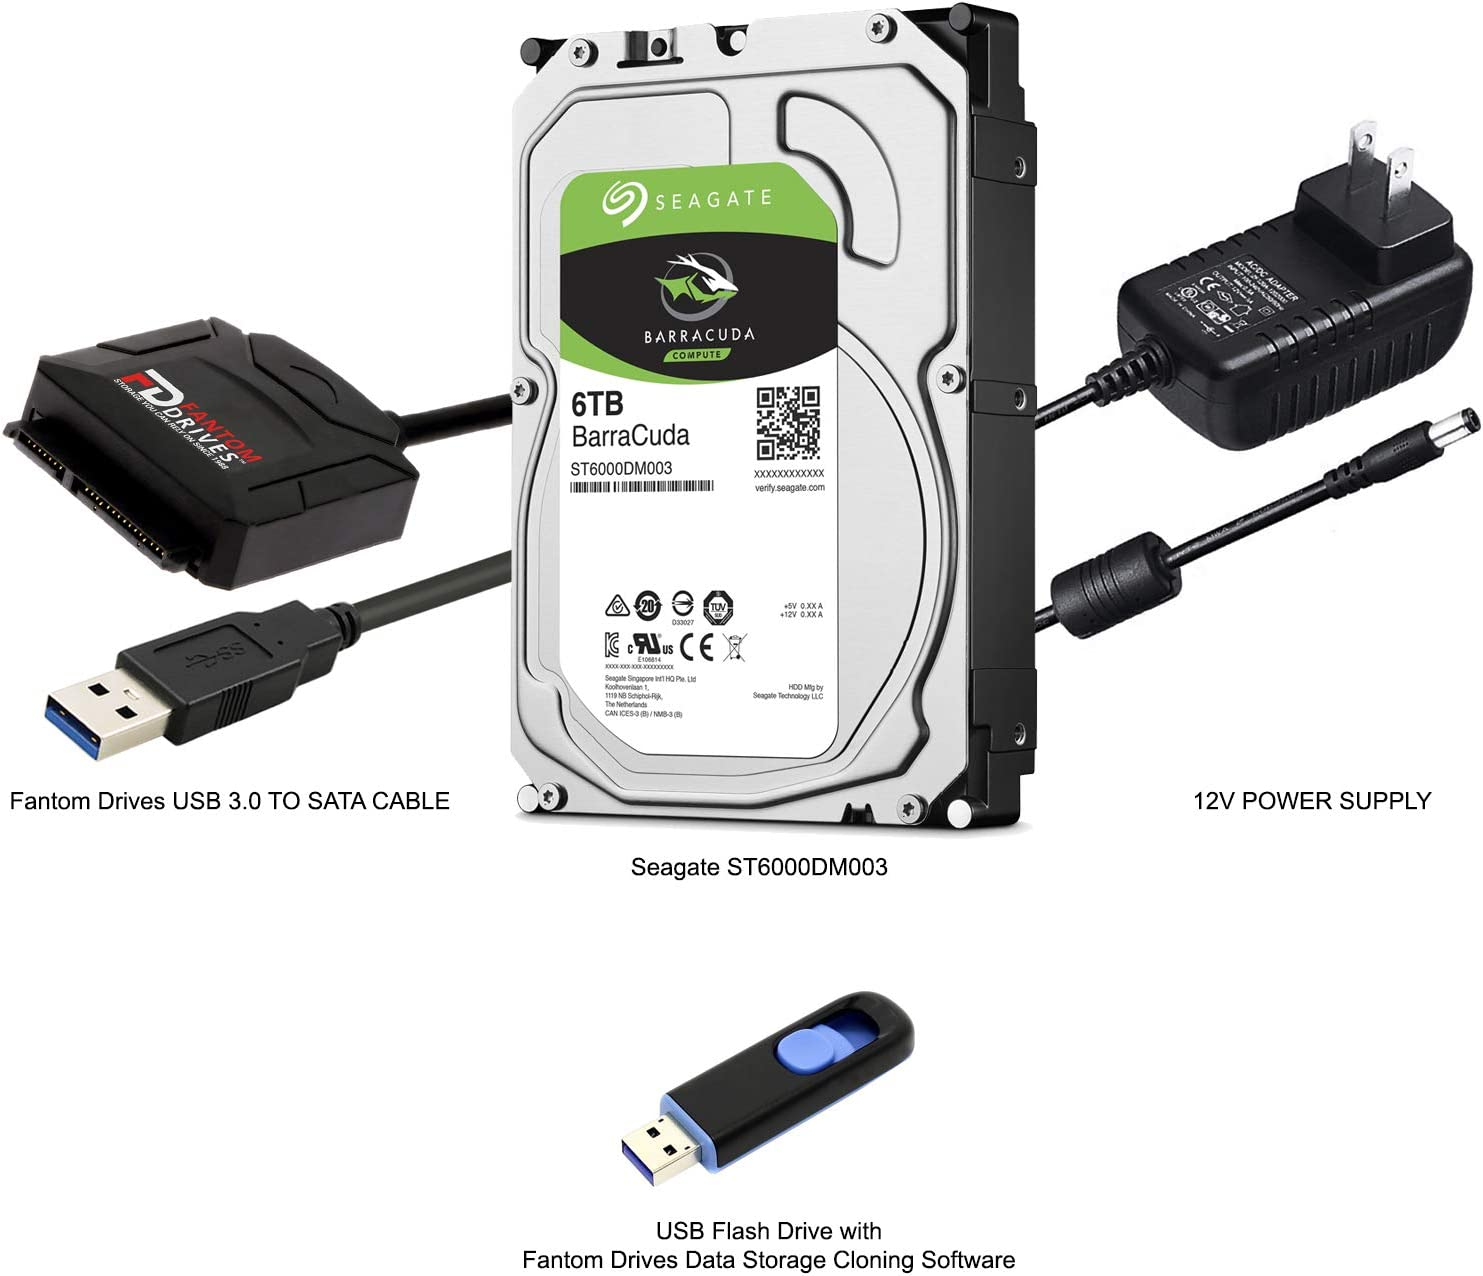 FD 6TB Hard Drive Upgrade Kit with Seagate Barracuda ST6000DM003 for PC and External HDD, Fantom Drives SATA to USB 3.0 Converter and Fantom Drives Cloning Software Inside USB Flash Drive